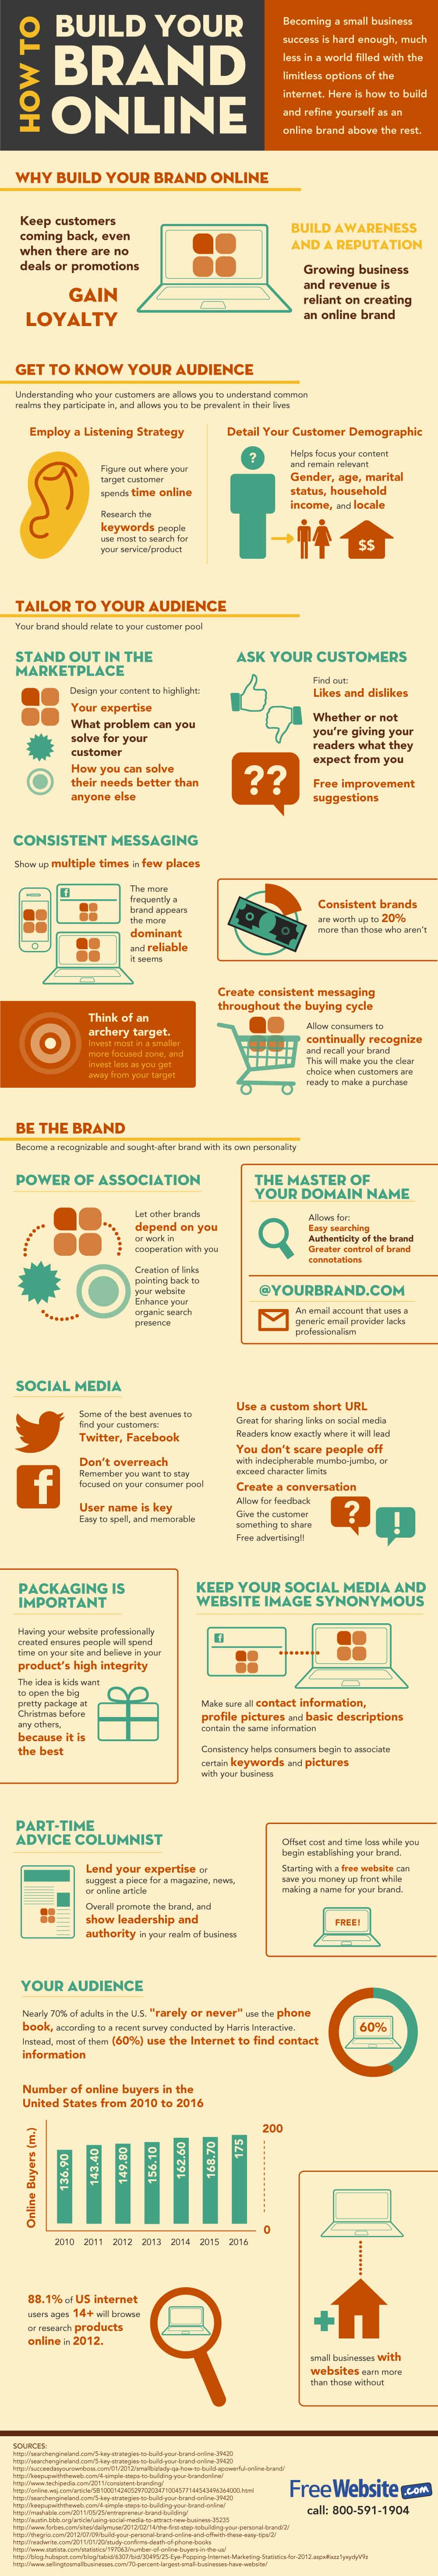 how-to-build-your-brand-online-1